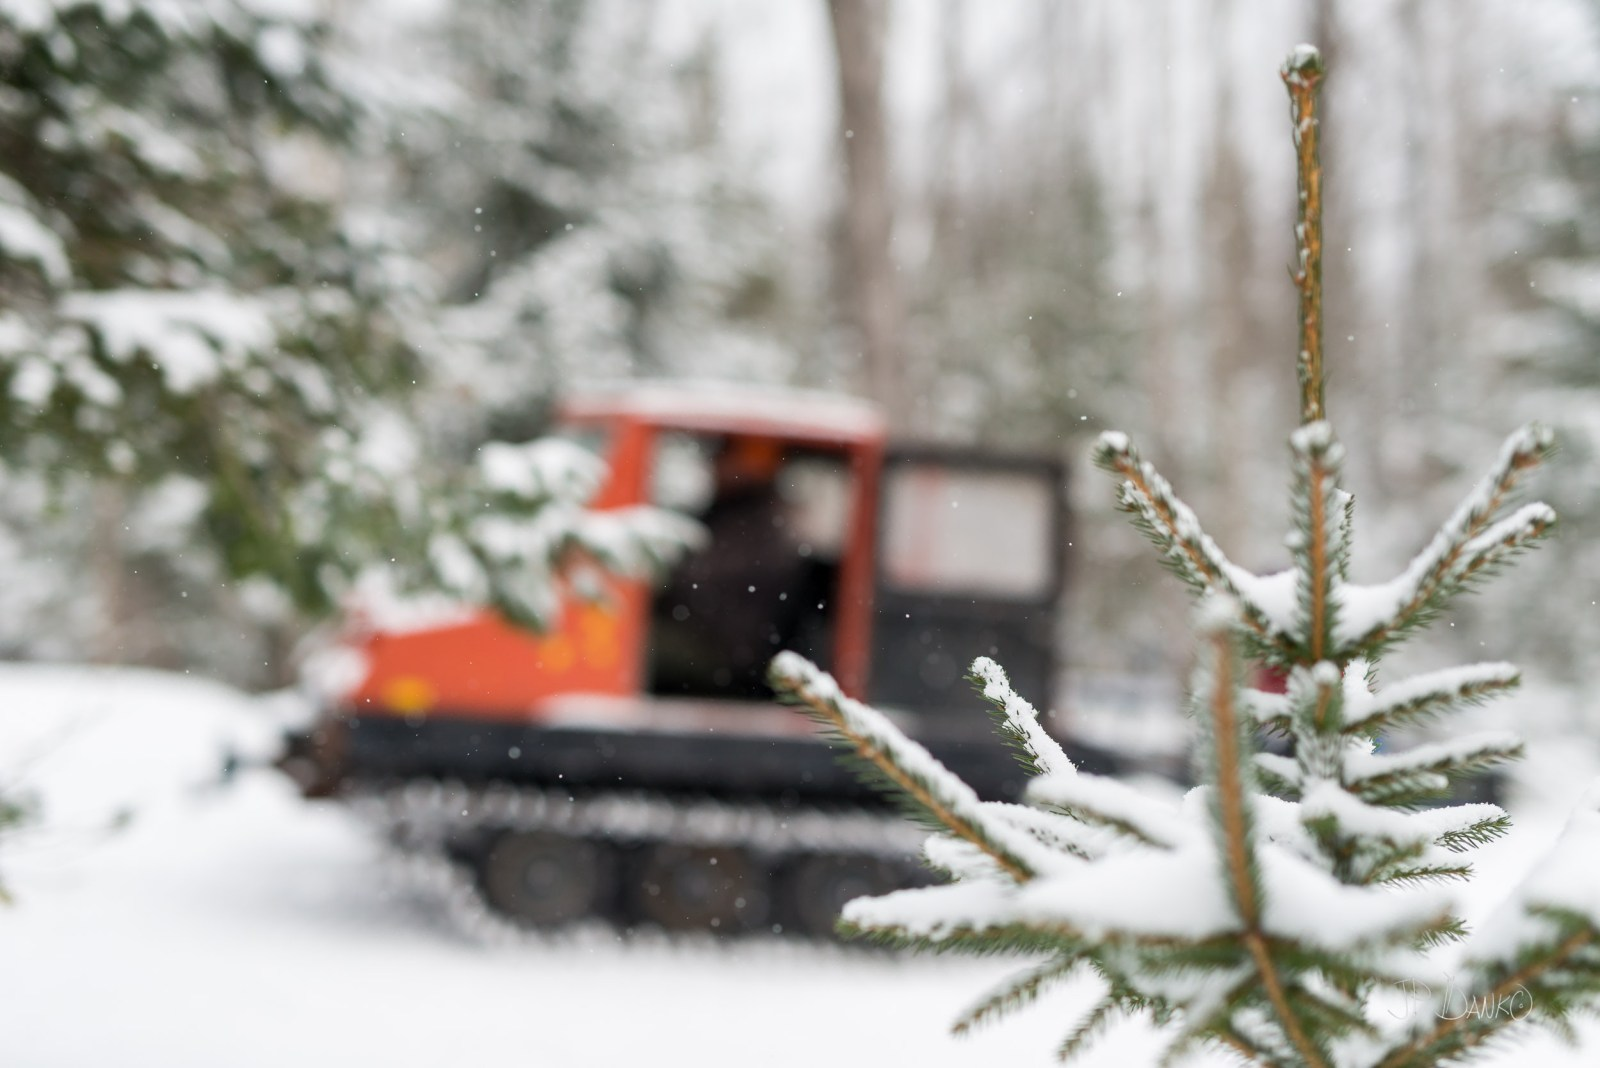 Snow-covered small pine tree seen up close as orange vintage snow groomer machine moves in the background